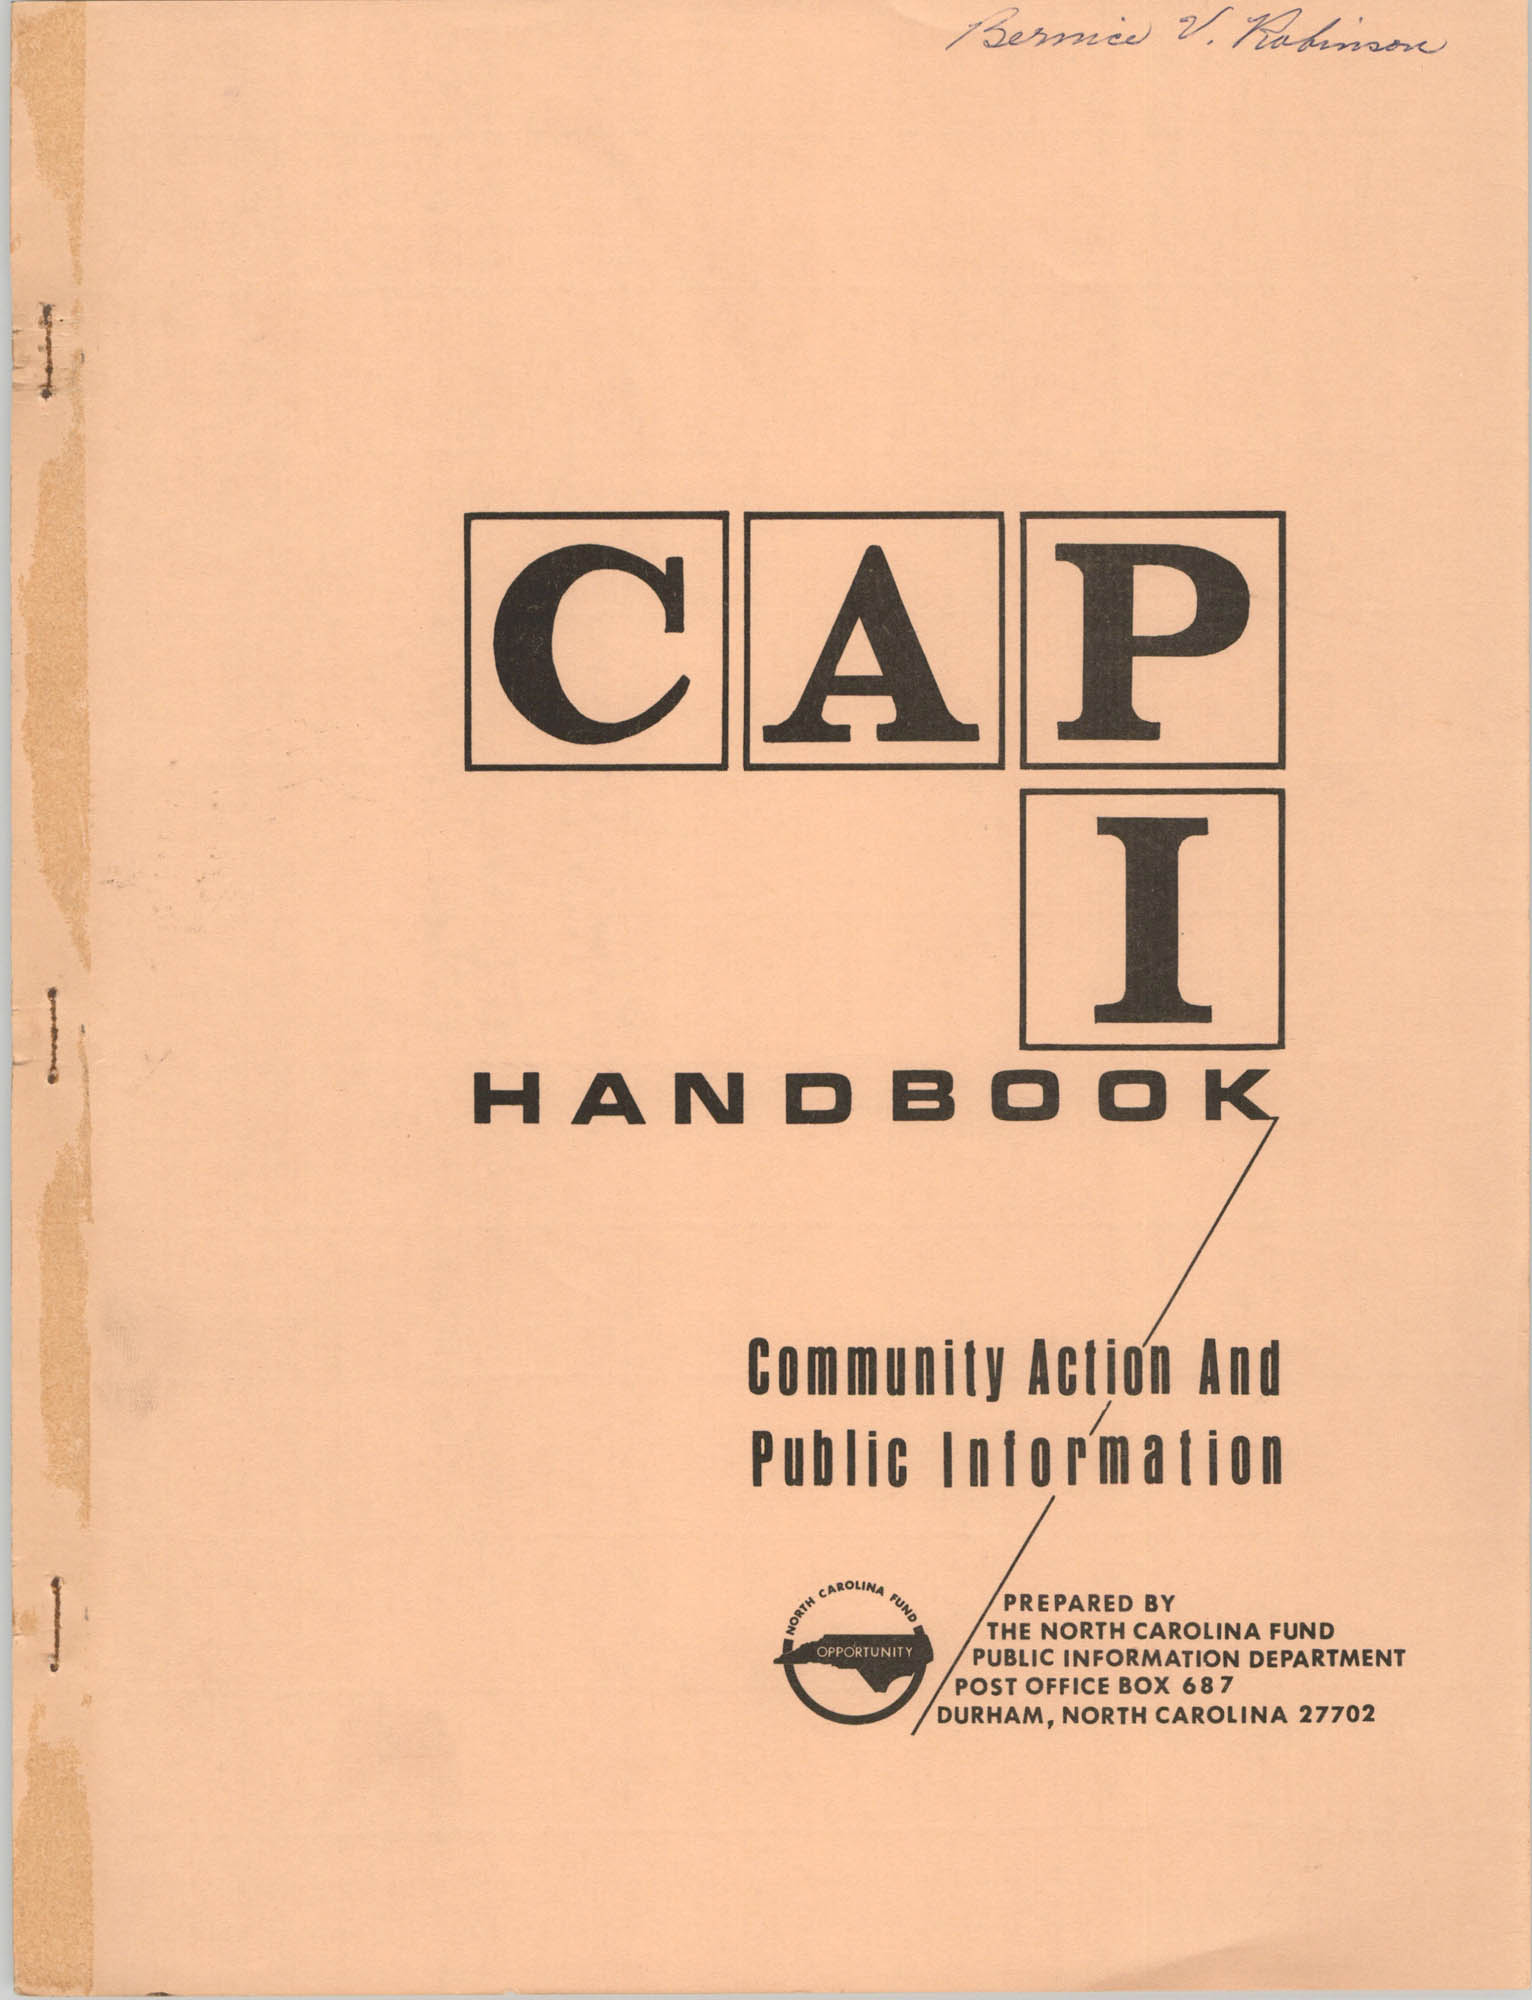 Community Action and Public Information Handbook, Front Cover